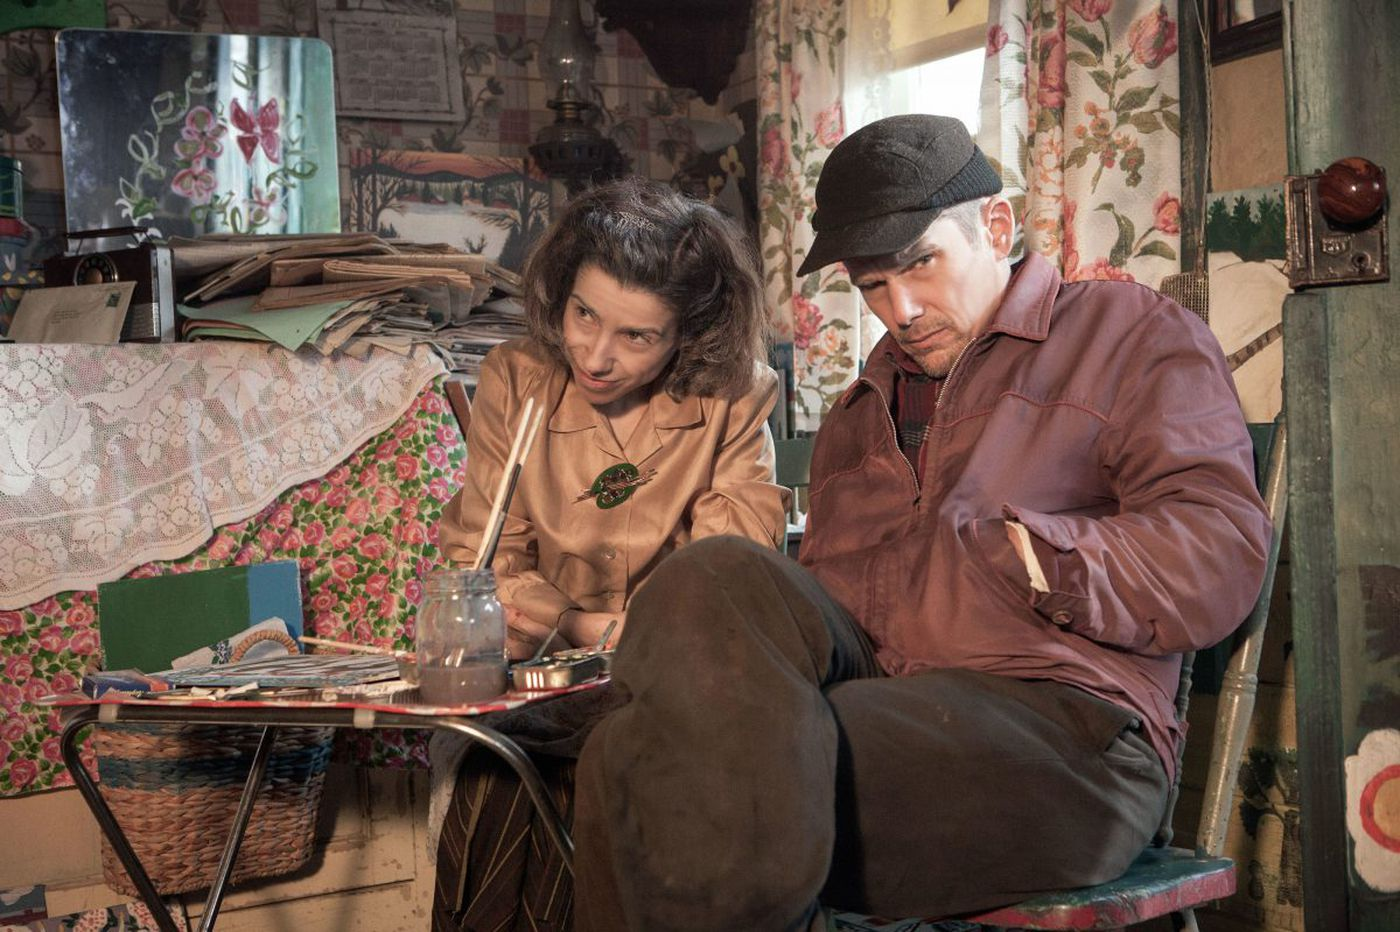 Art initiates life: Moving 'Maudie' tells painter Maud Lewis' inspiring story